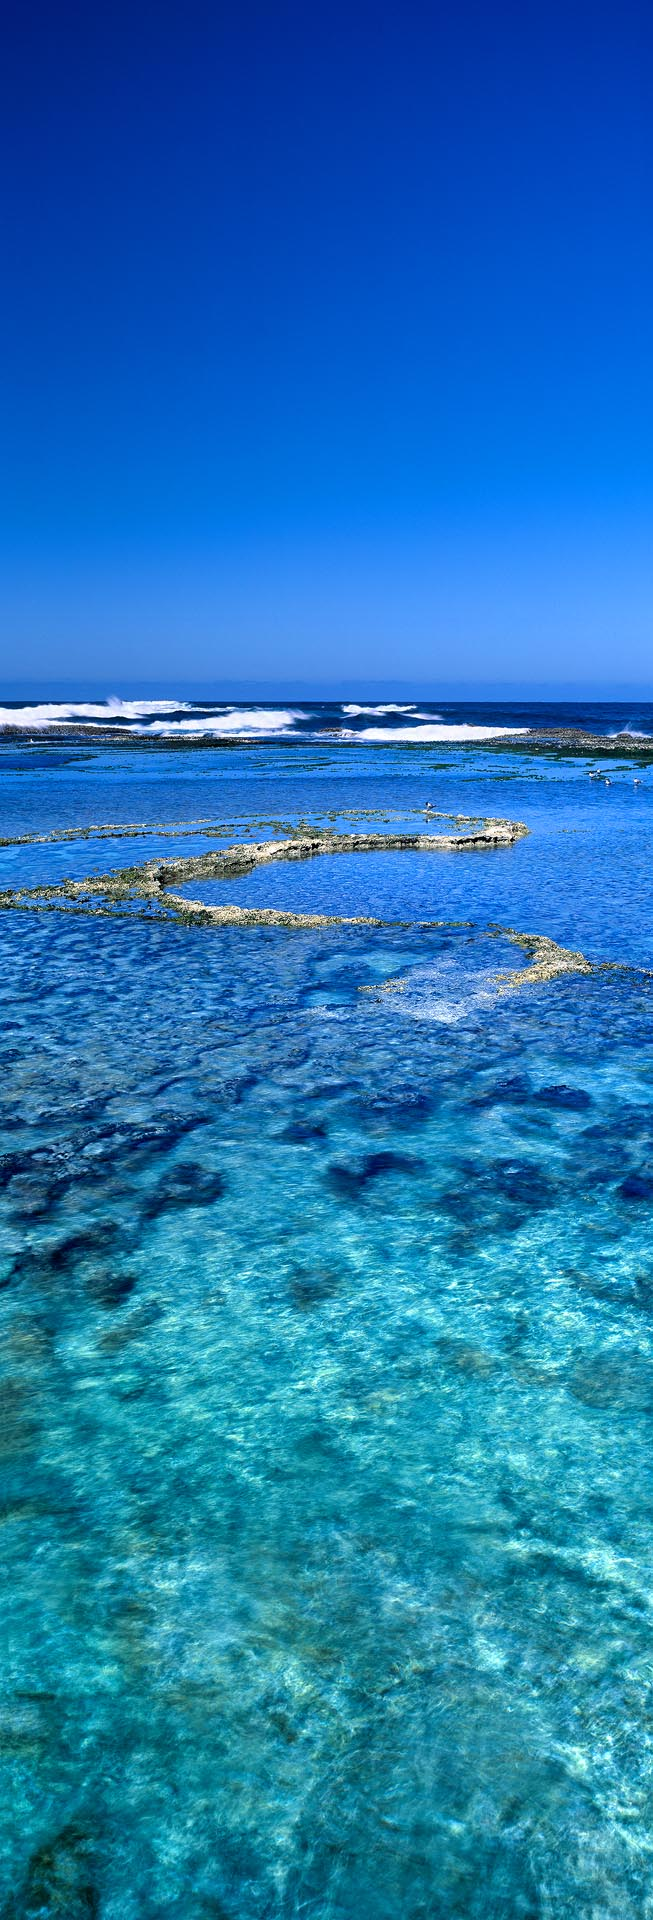 West End, Rottnest Island, Western Australia | Christian Fletcher Photo Images | Landscape Photography Australia